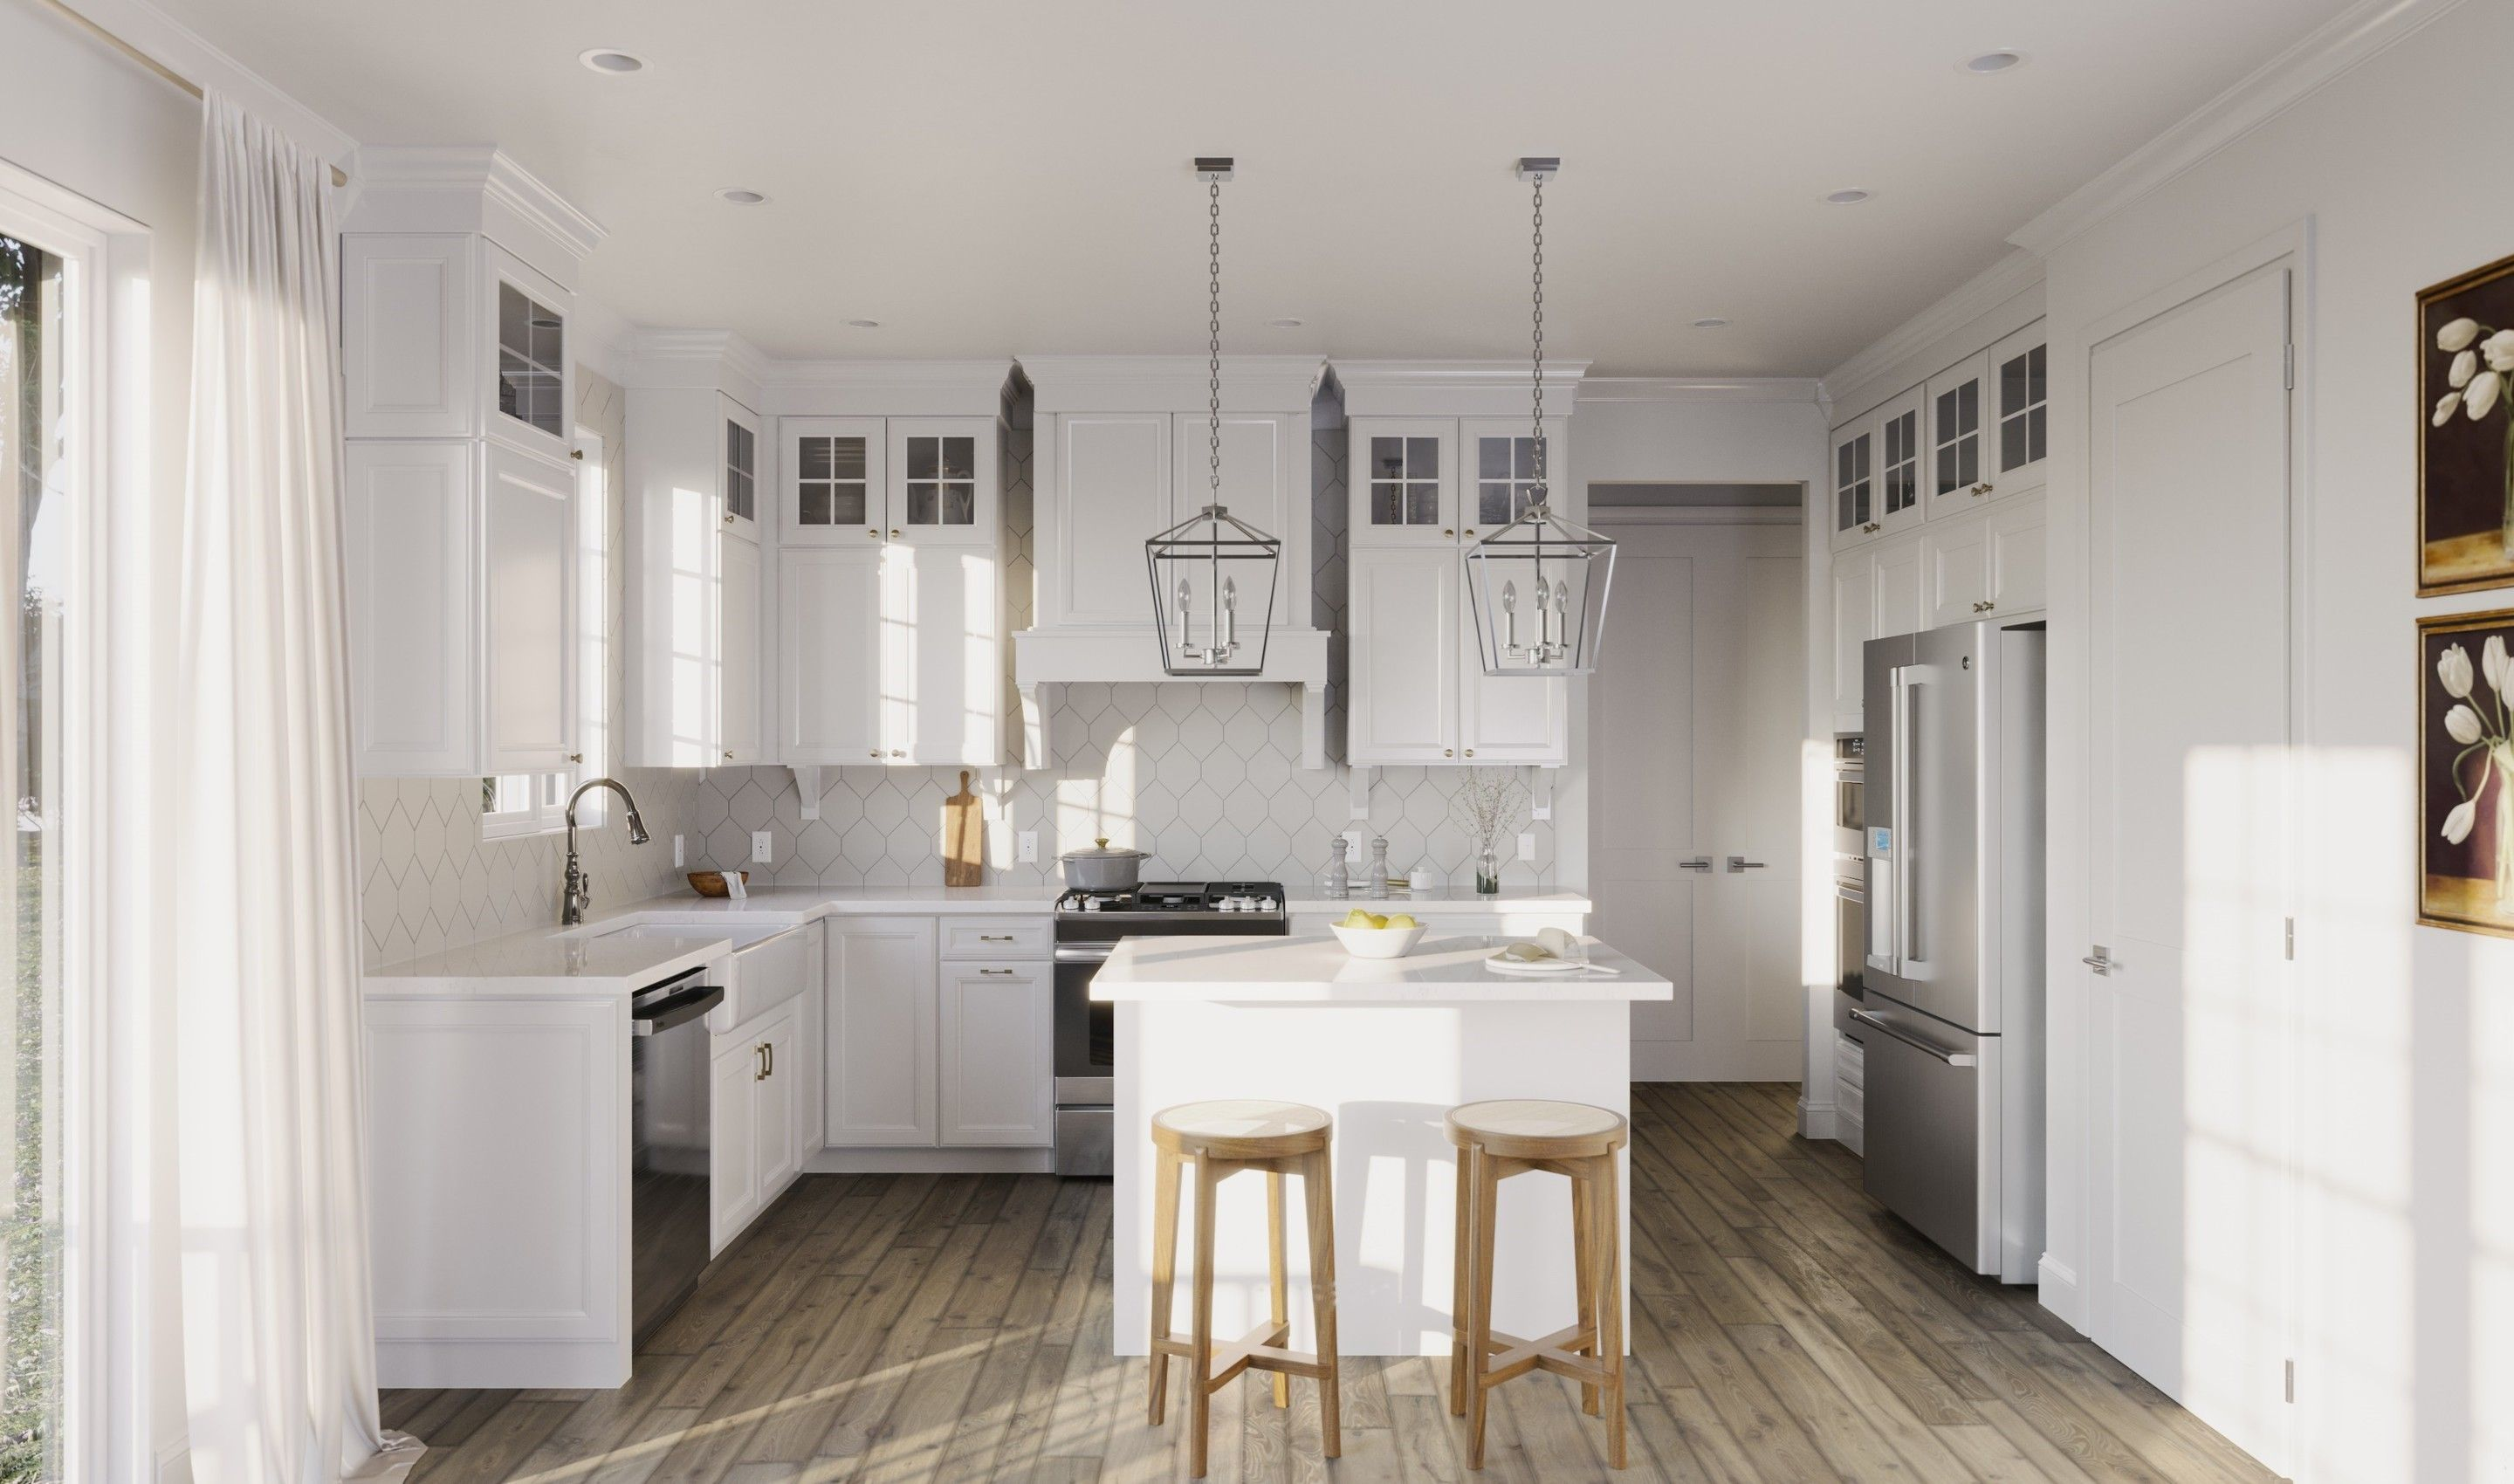 Kitchen featured in the Hanover By K. Hovnanian® Homes in Monmouth County, NJ